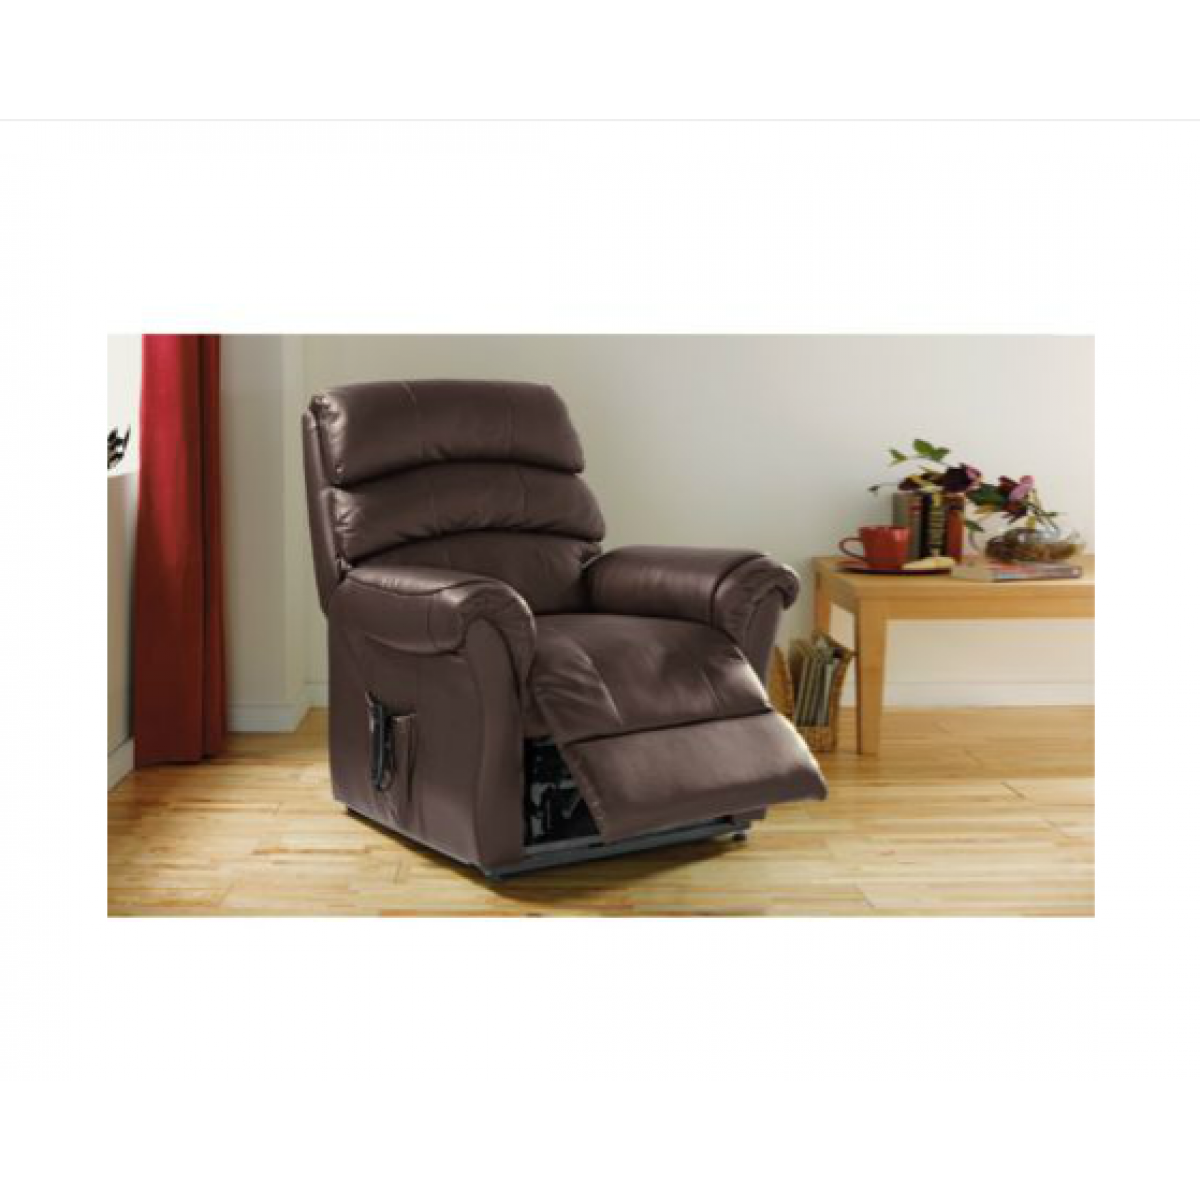 brown Power Lift Recliners with pocket on wooden floor plus wooden table for living room decor ideas